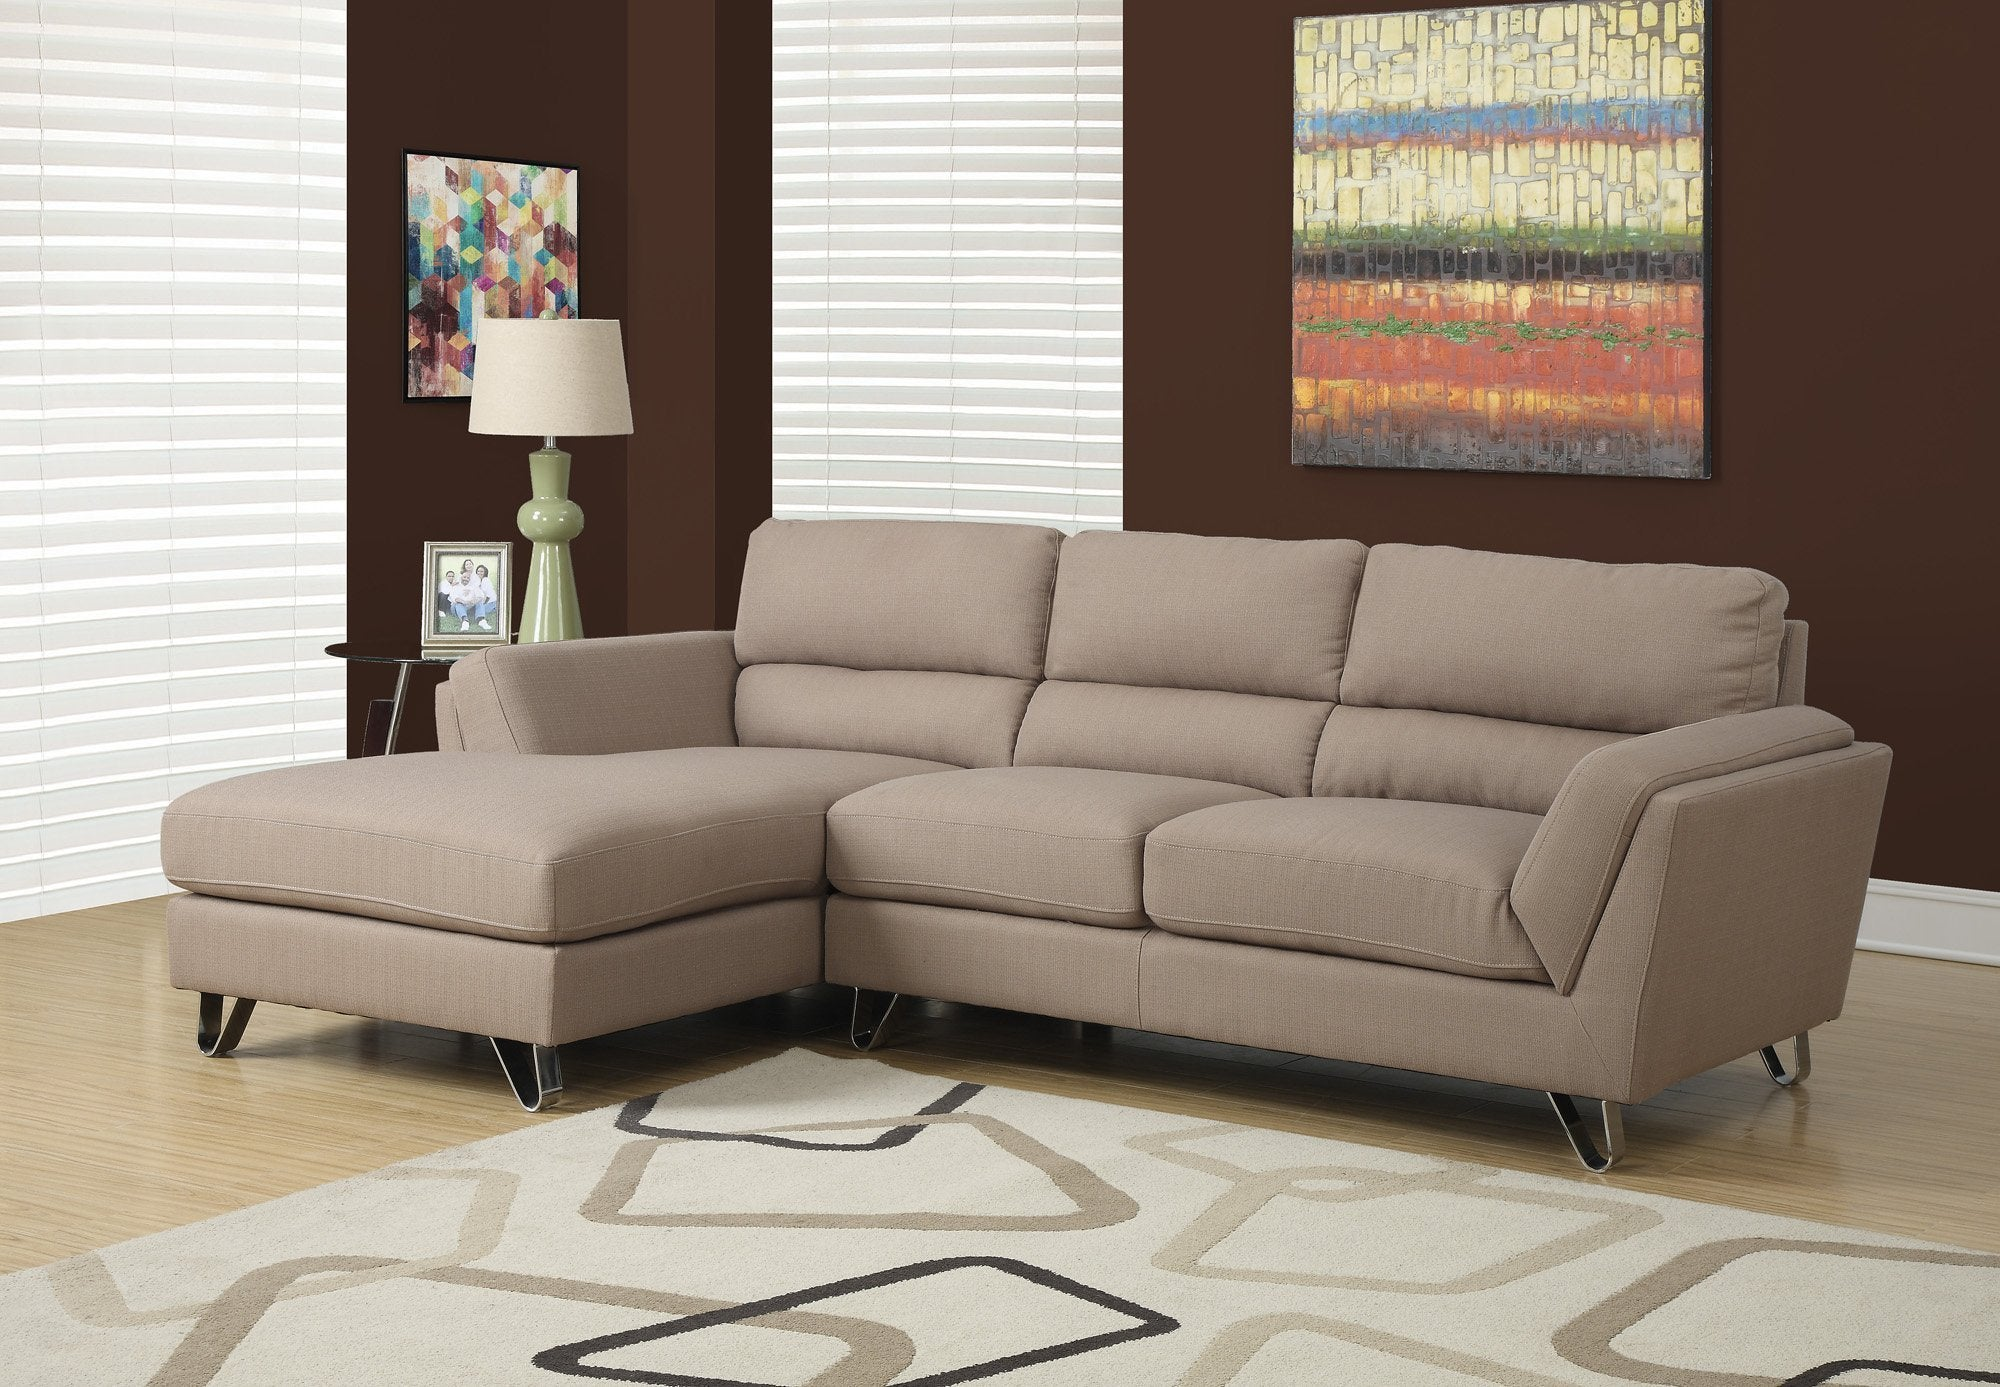 Monarch Specialties I 8210LB Sofa Chaise Longue Tissu Lin Brun Pale